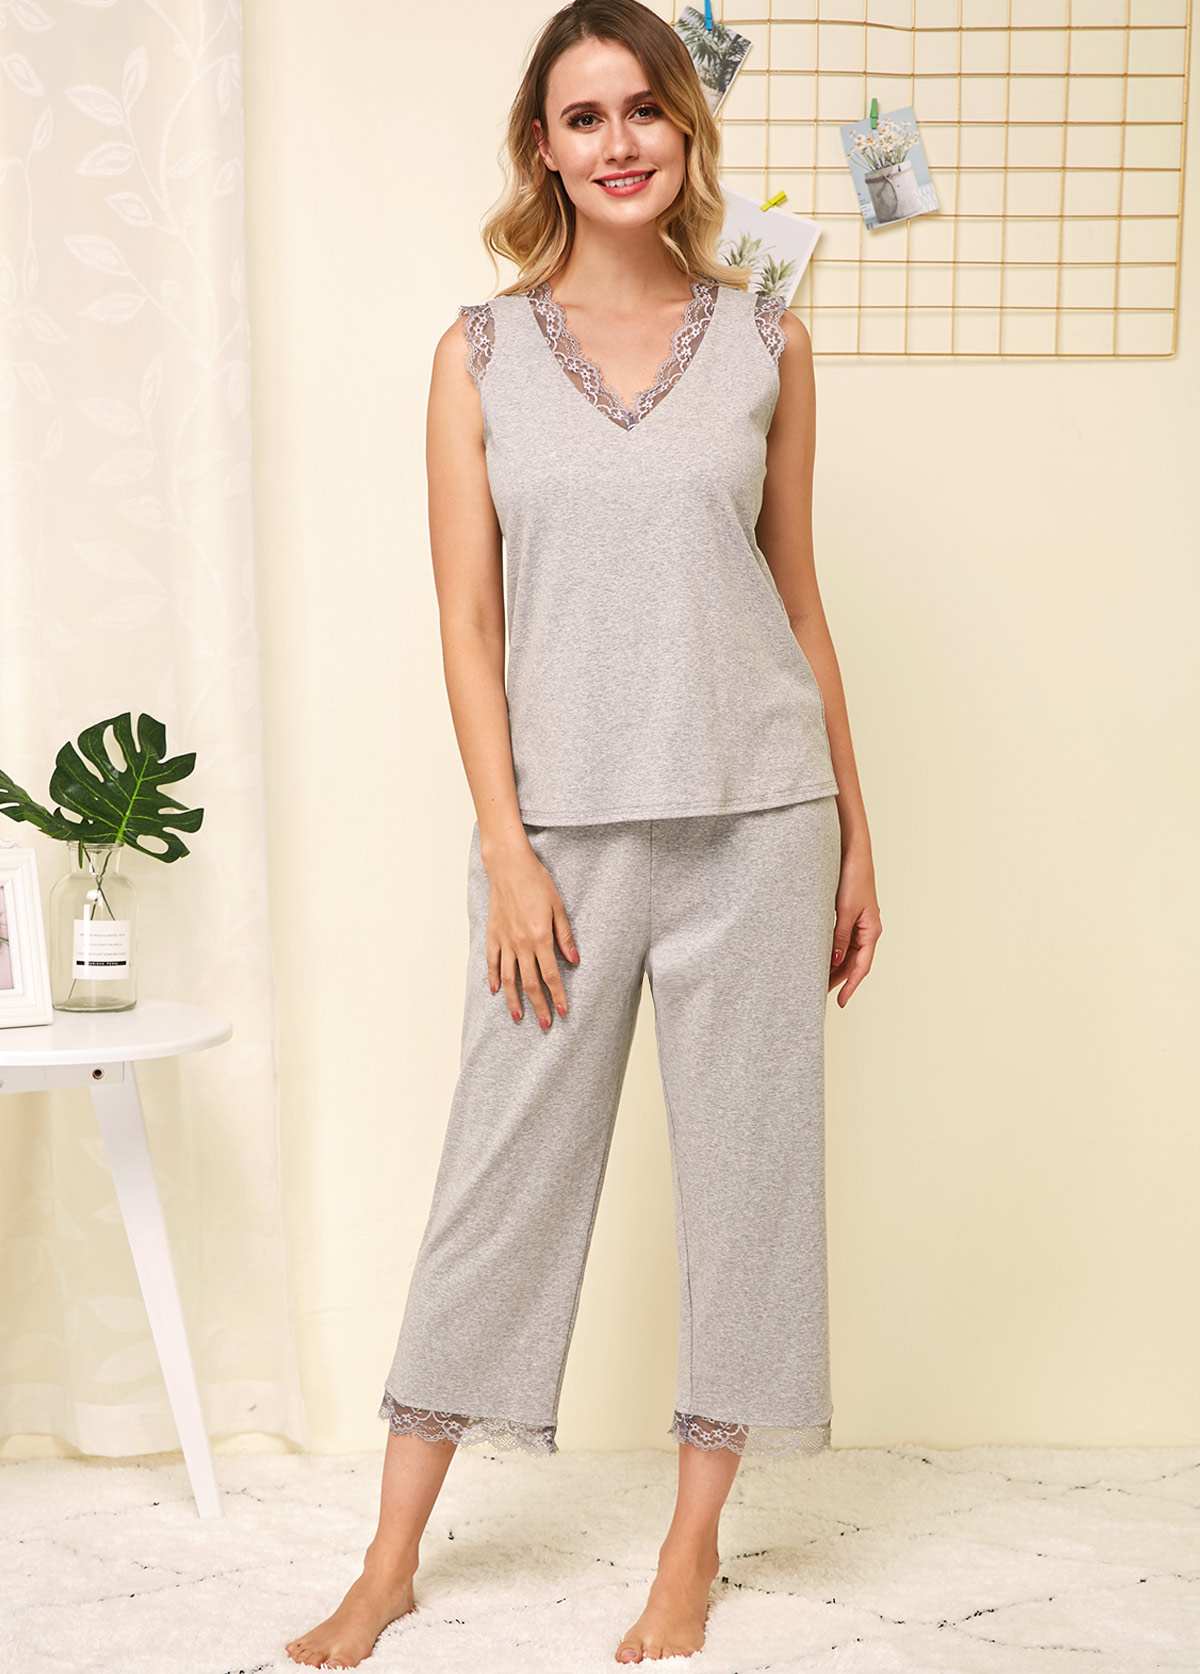 ROTITA Lace Patchwork Sleeveless Grey Lounge Top and Pants